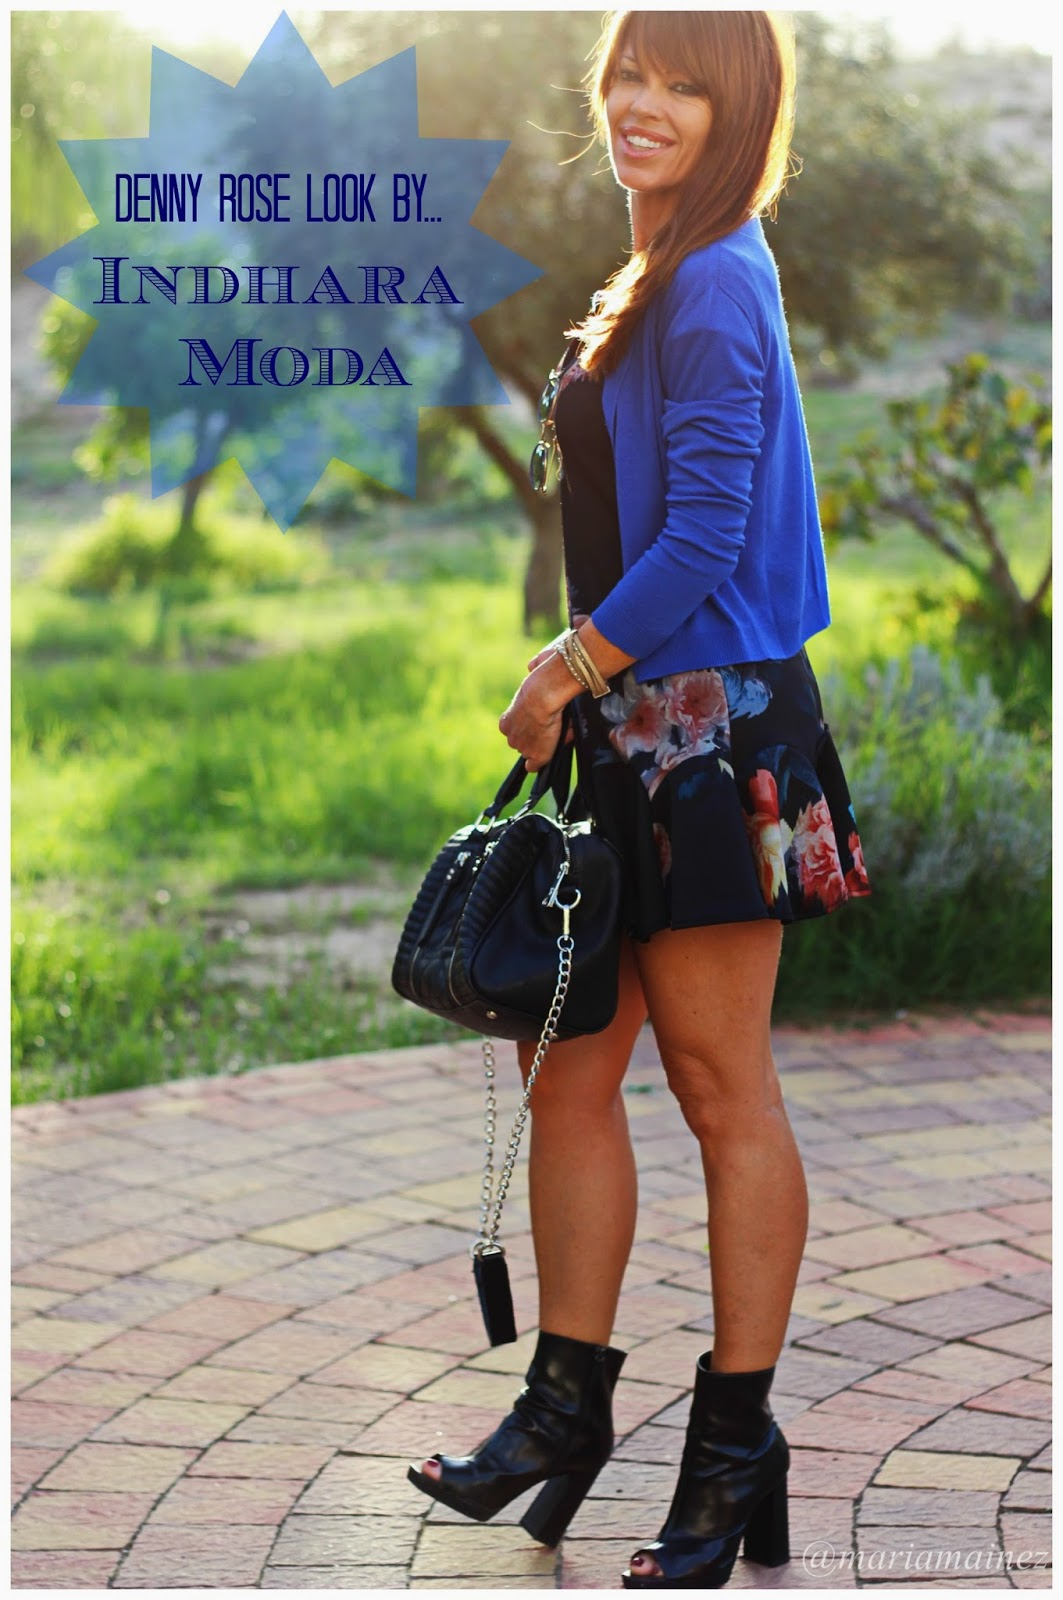 Denny Rose Dress- Botines zara - Outfit 2014 - Pepe Moll bolsos - blue color